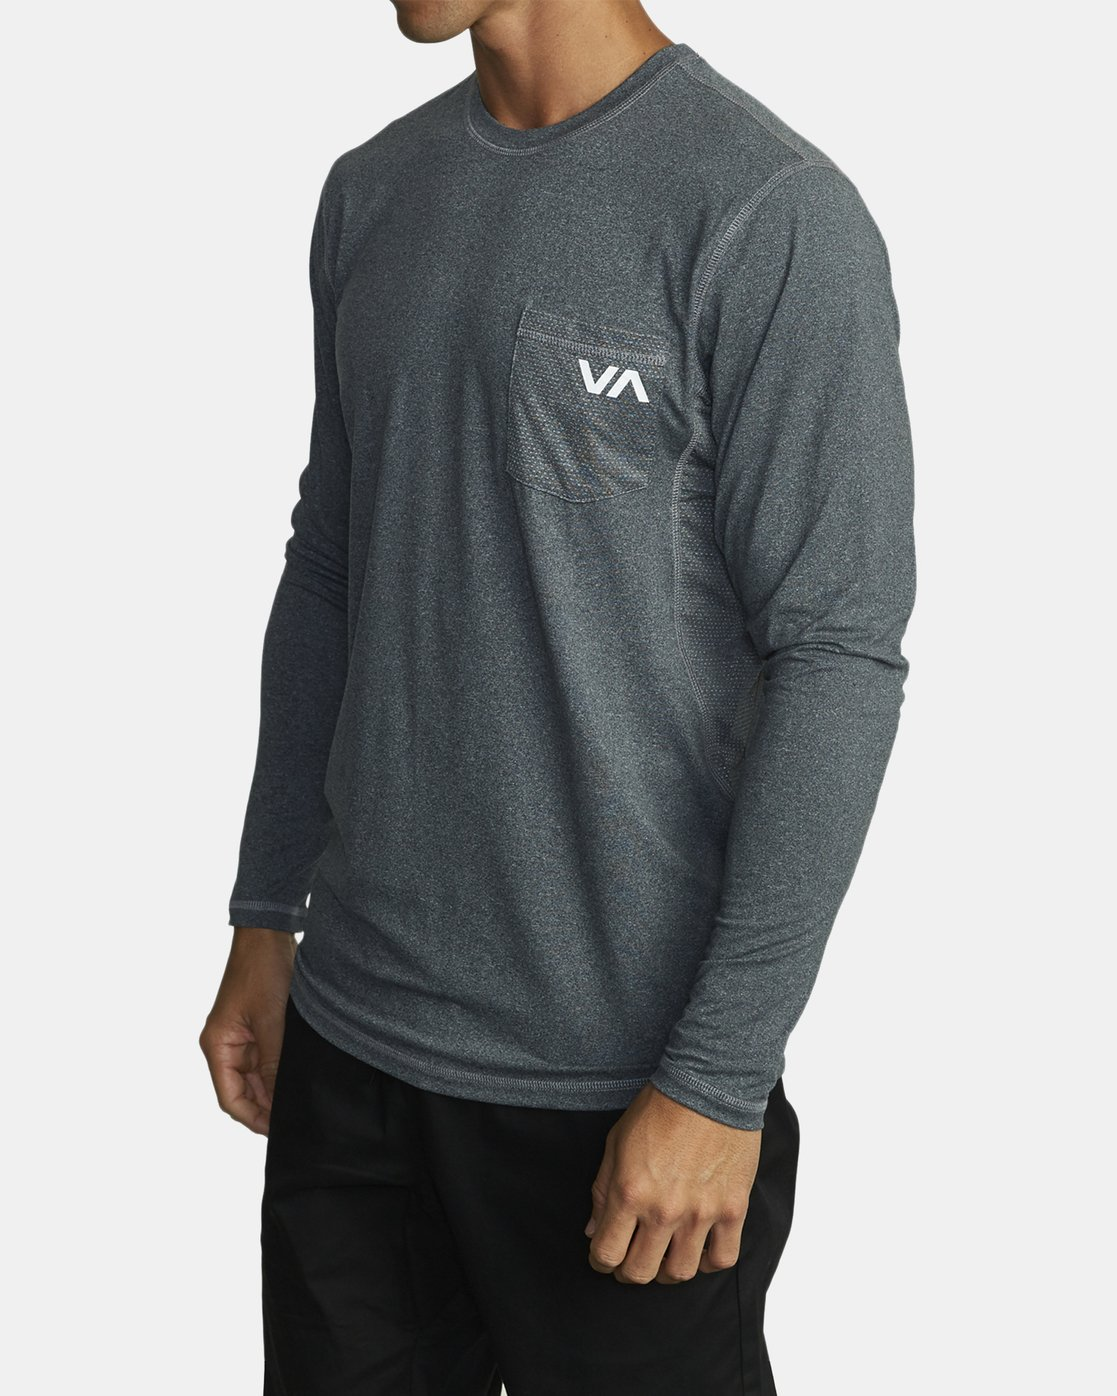 1 SPORT VENT LONG SLEEVE TOP Brown V9011RSV RVCA